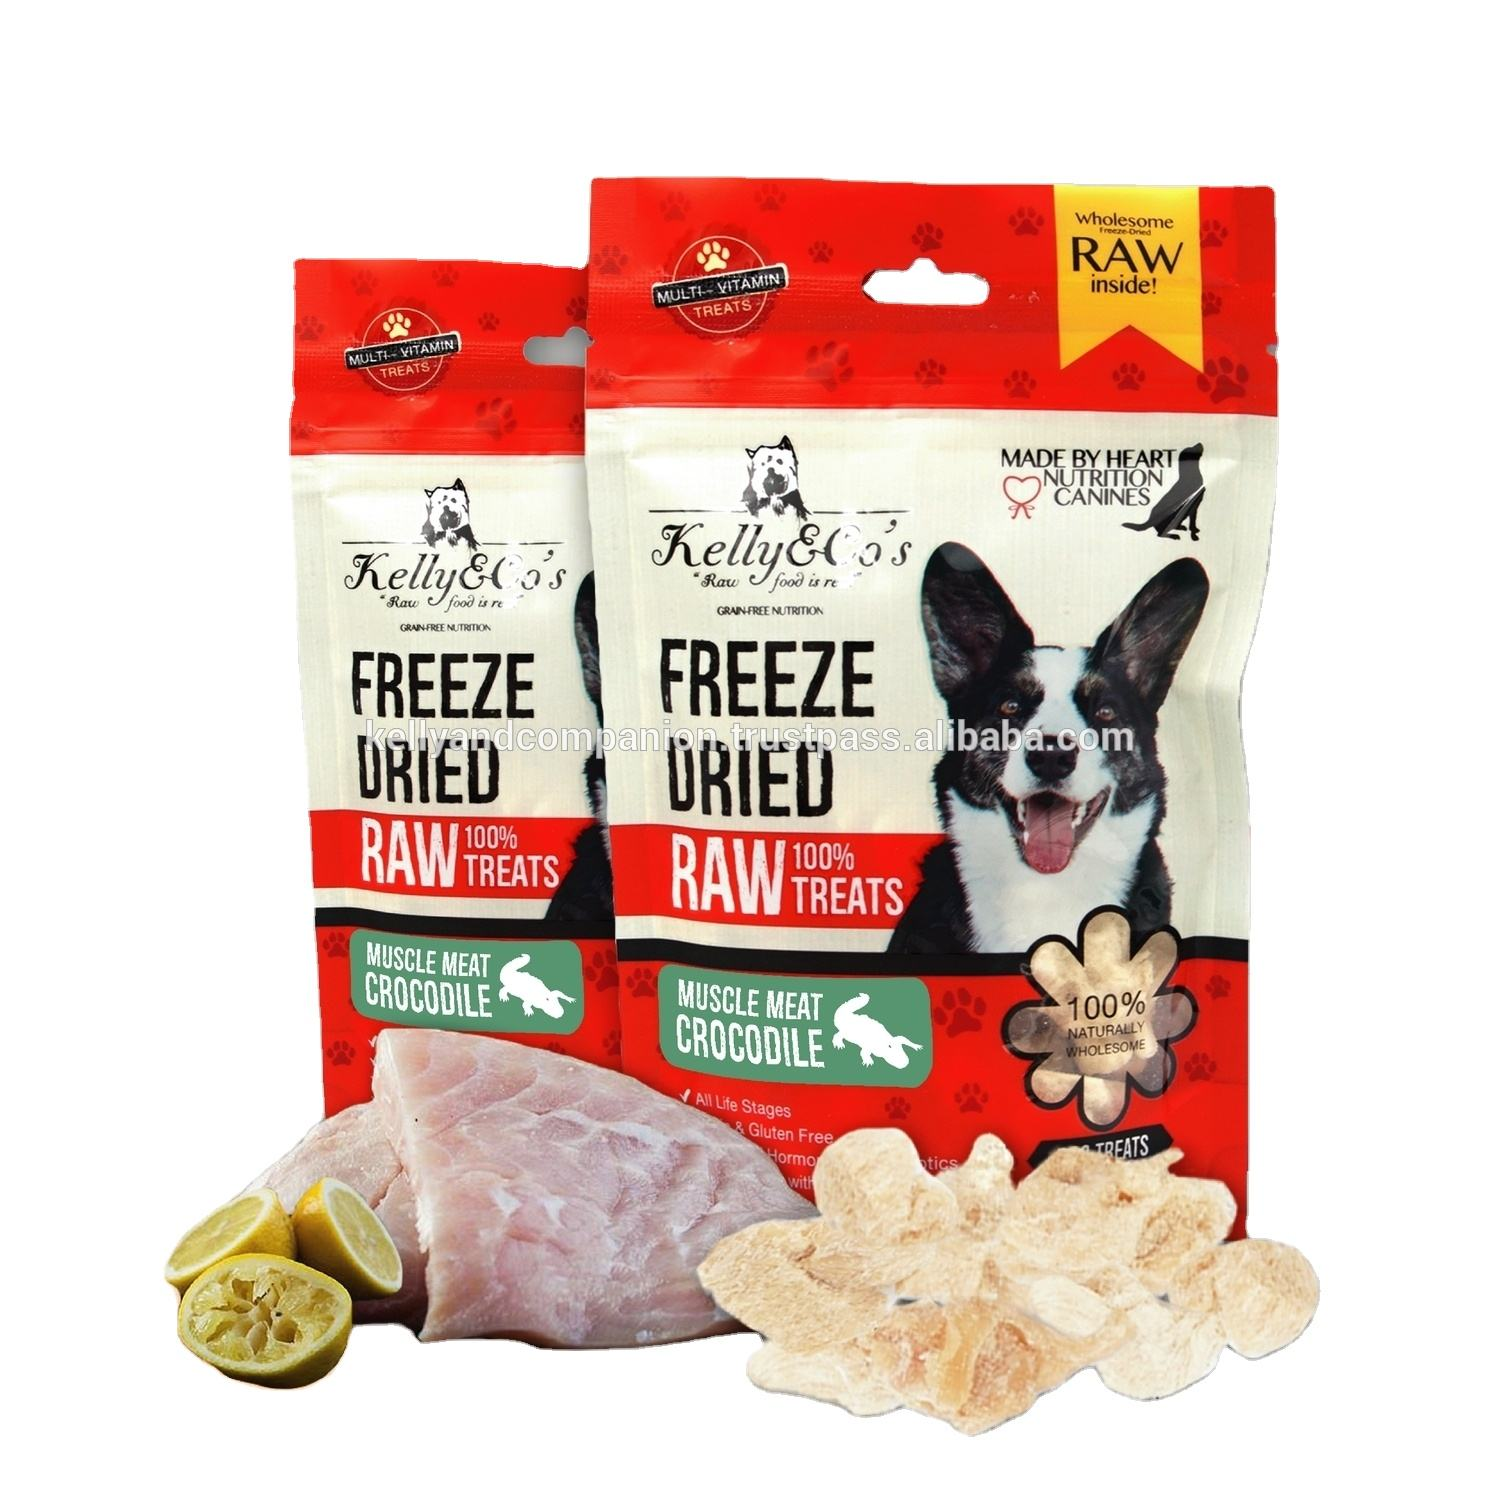 Kelly & Co's Freeze Dried Crocodile Muscle Meat Pet Food Treats Natural High Quality Protein Nutrition Stable Shelf Life